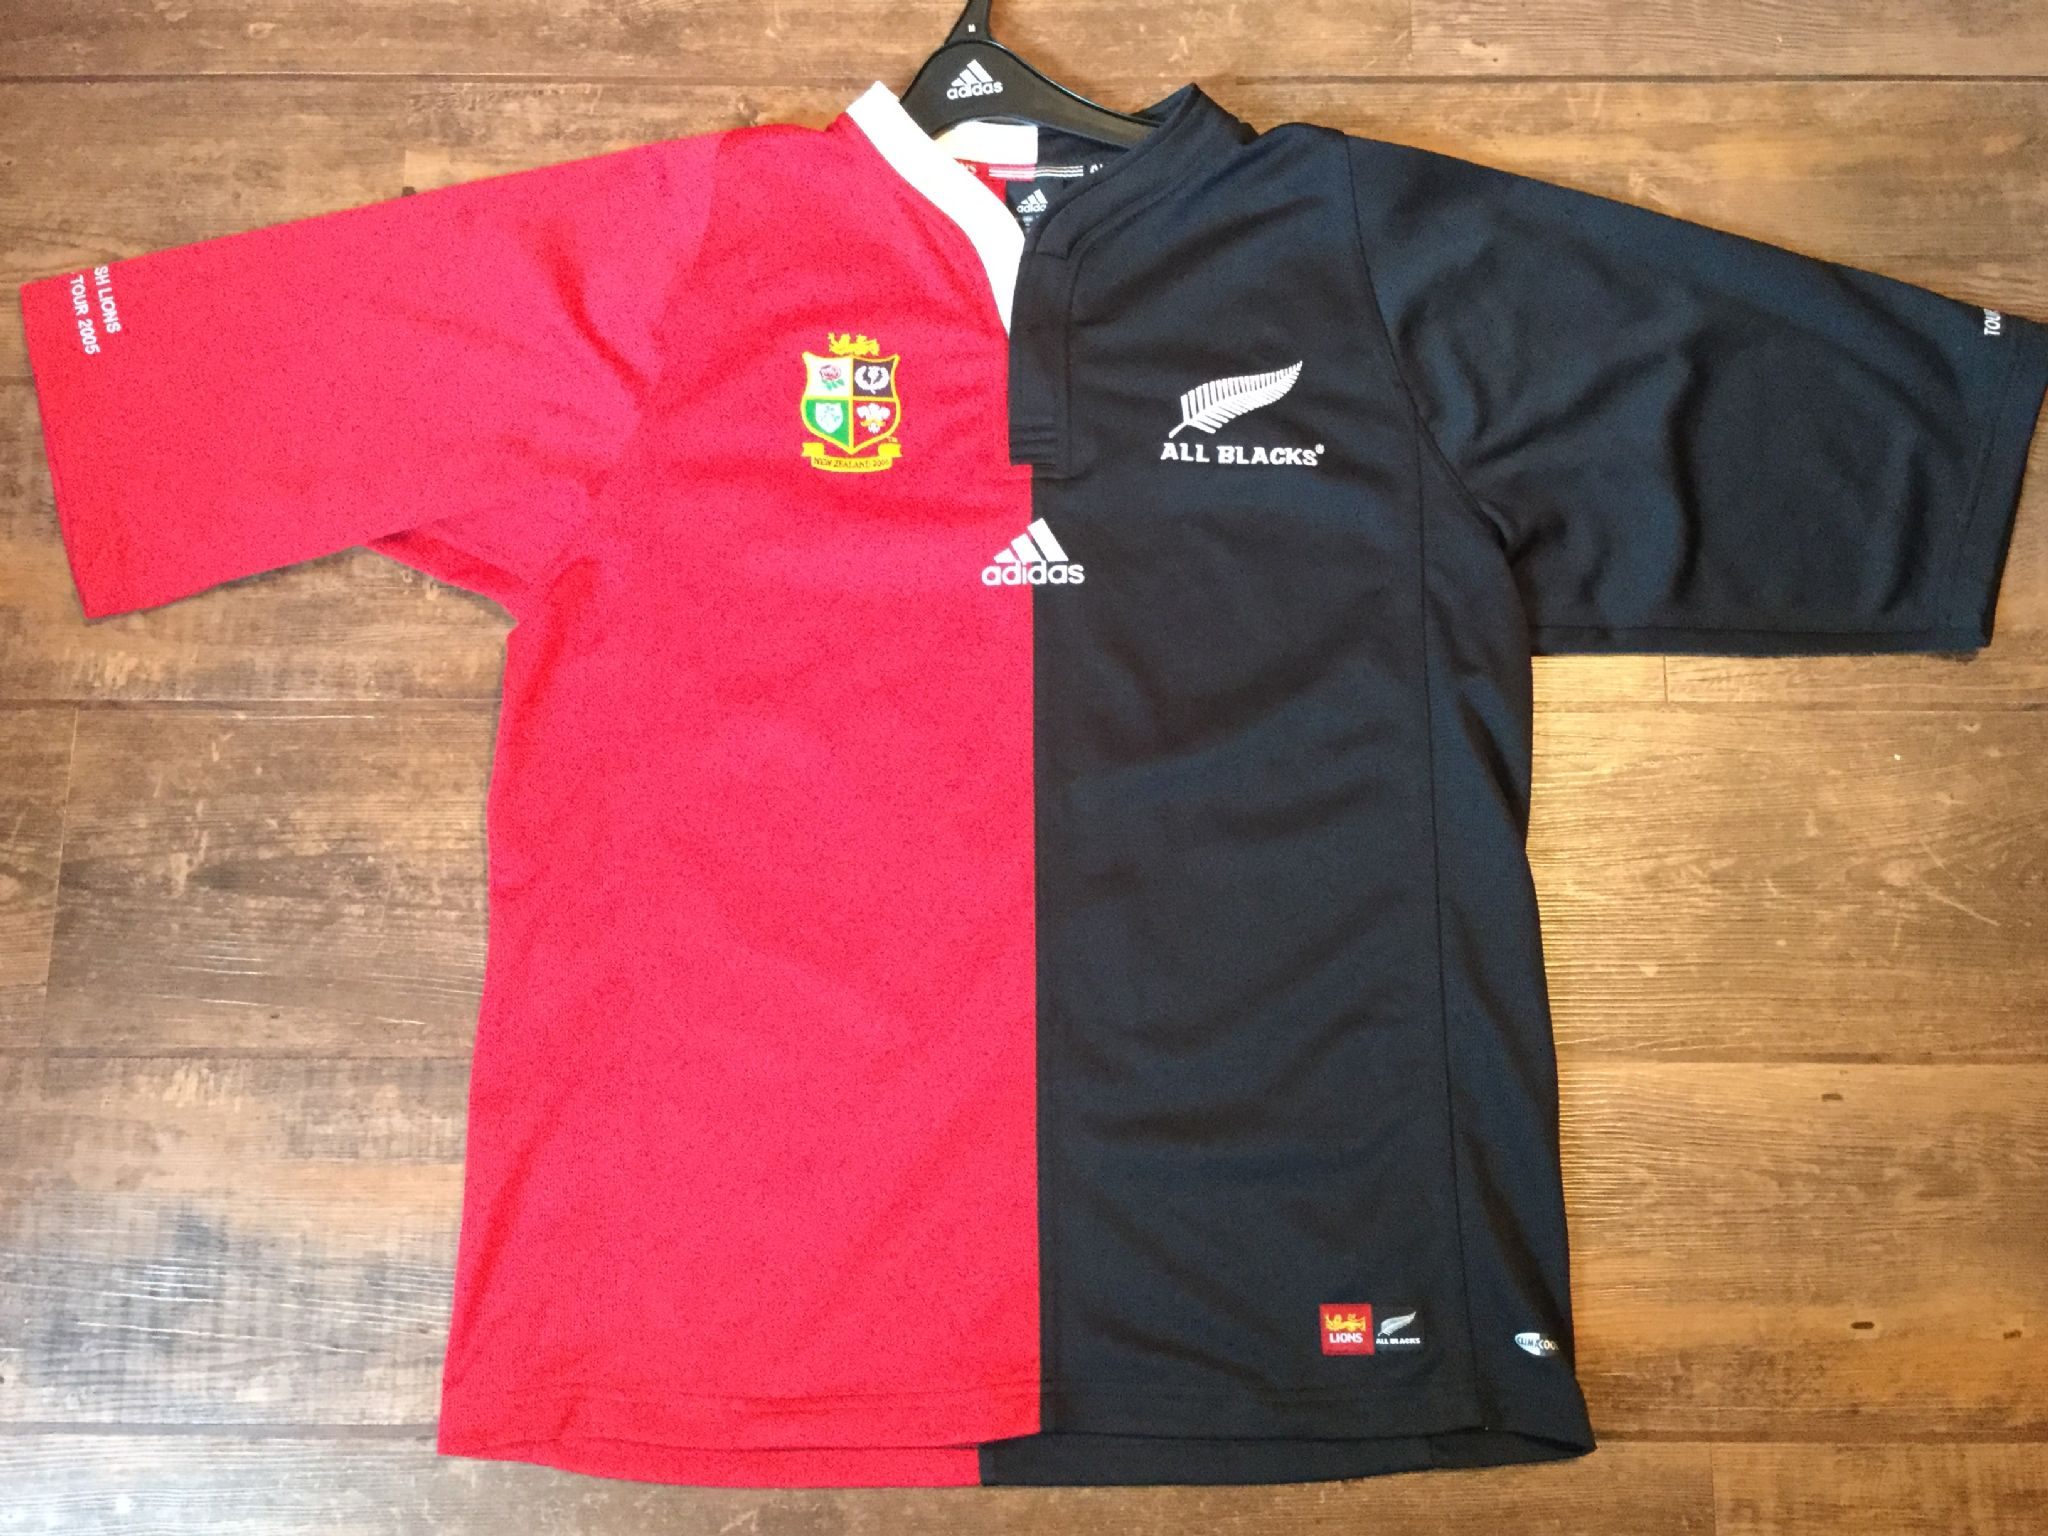 750a6fa8d07 2005 British & Irish Lions New Zealand BNWT & Cover Ltd Edition Rugby Union  Shirt Adults Medium